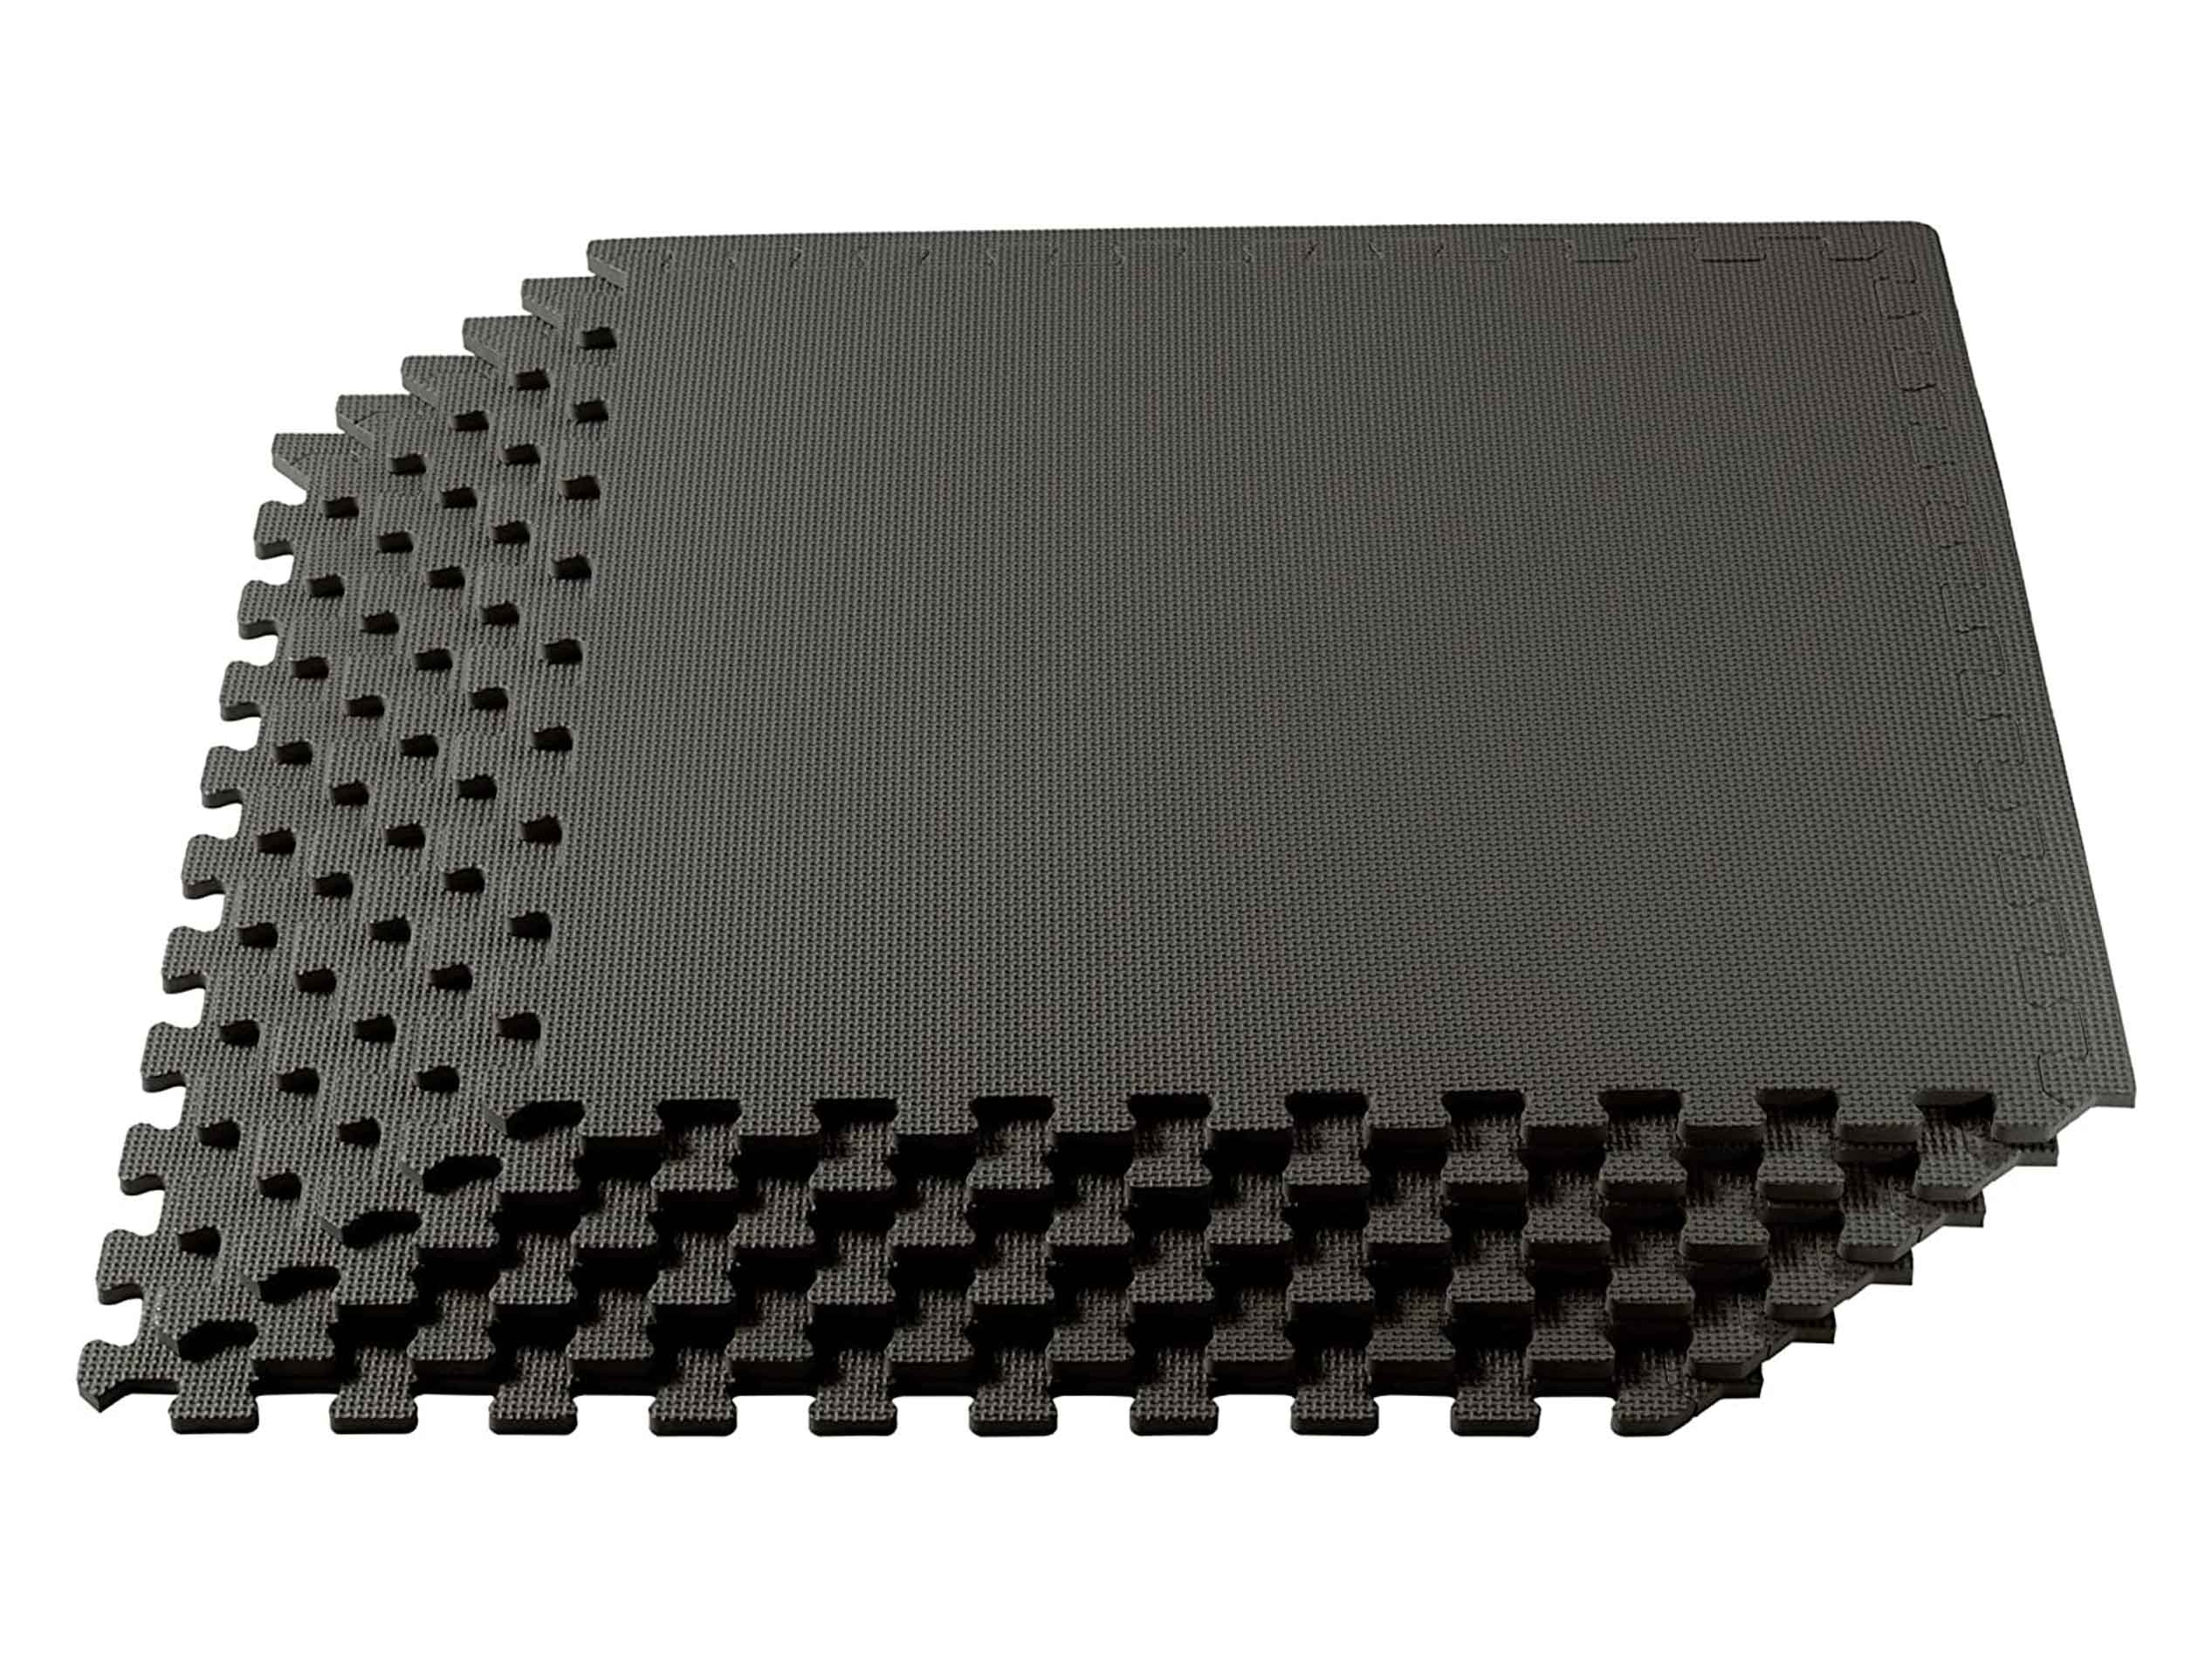 We Sell Mats 3/8 Inch Thick Multipurpose Exercise Floor Mat with EVA Foam, Interlocking Tiles, Anti-Fatigue for Home or Gym